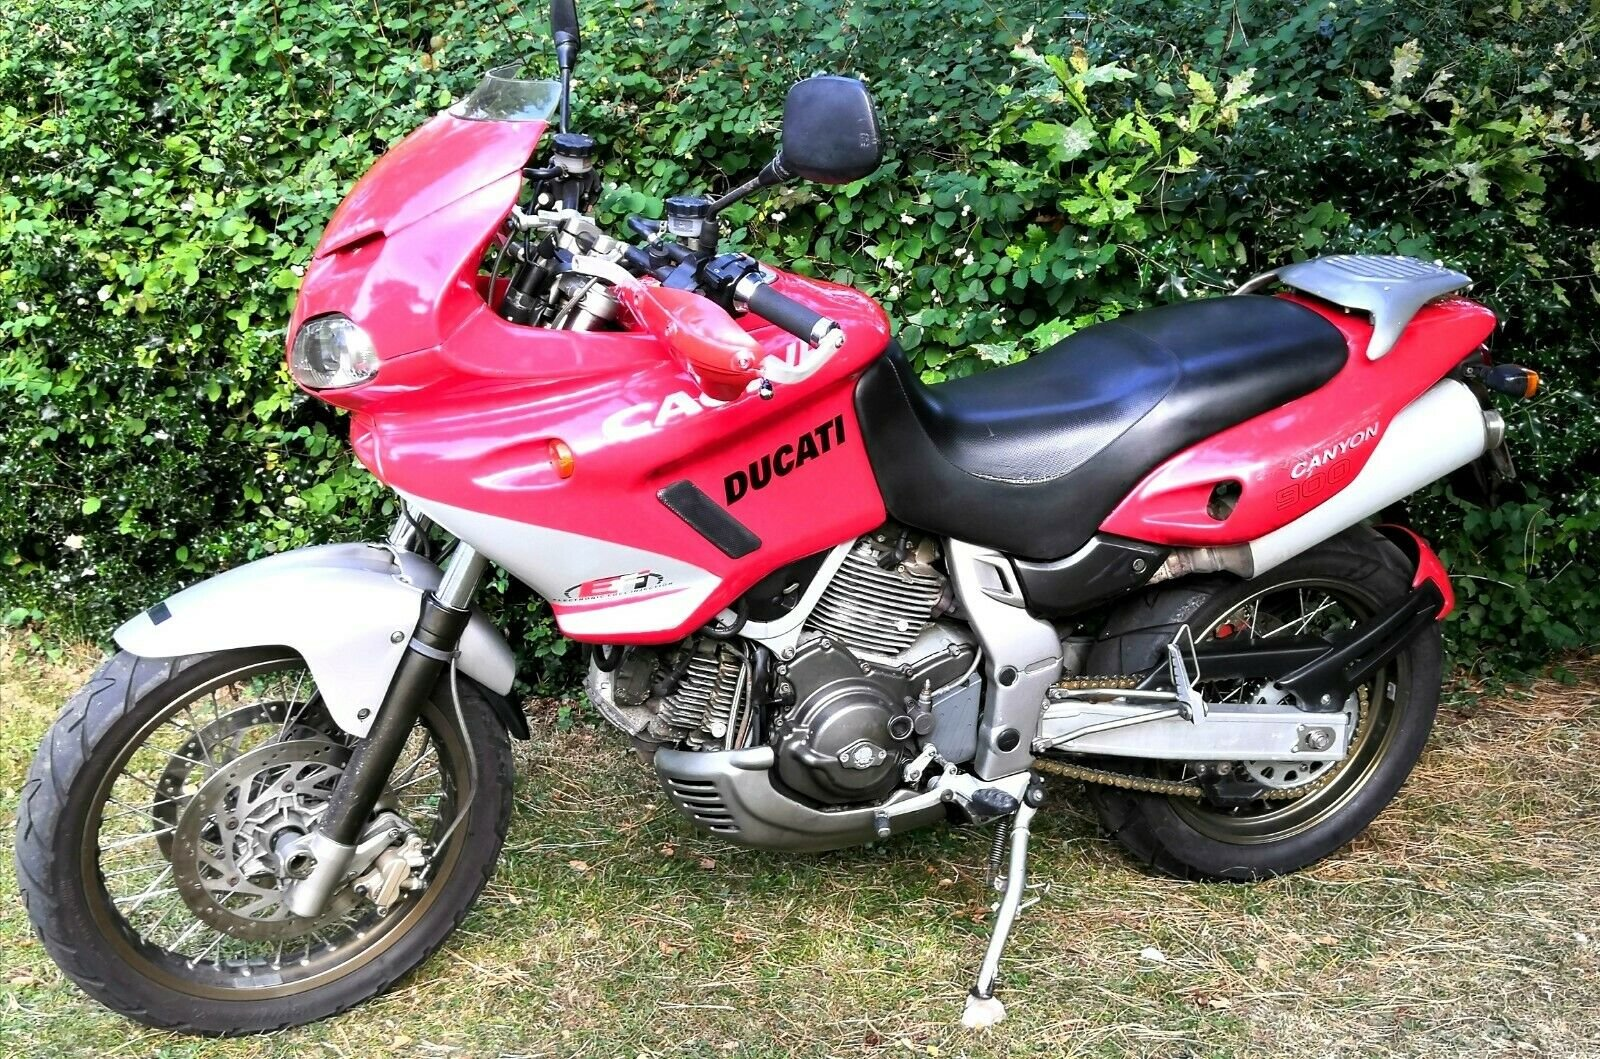 1999 Cagiva Gran Canyon 900 Ducati VTwin 25,850 Miles VGC PX Swap For Sale (picture 2 of 6)